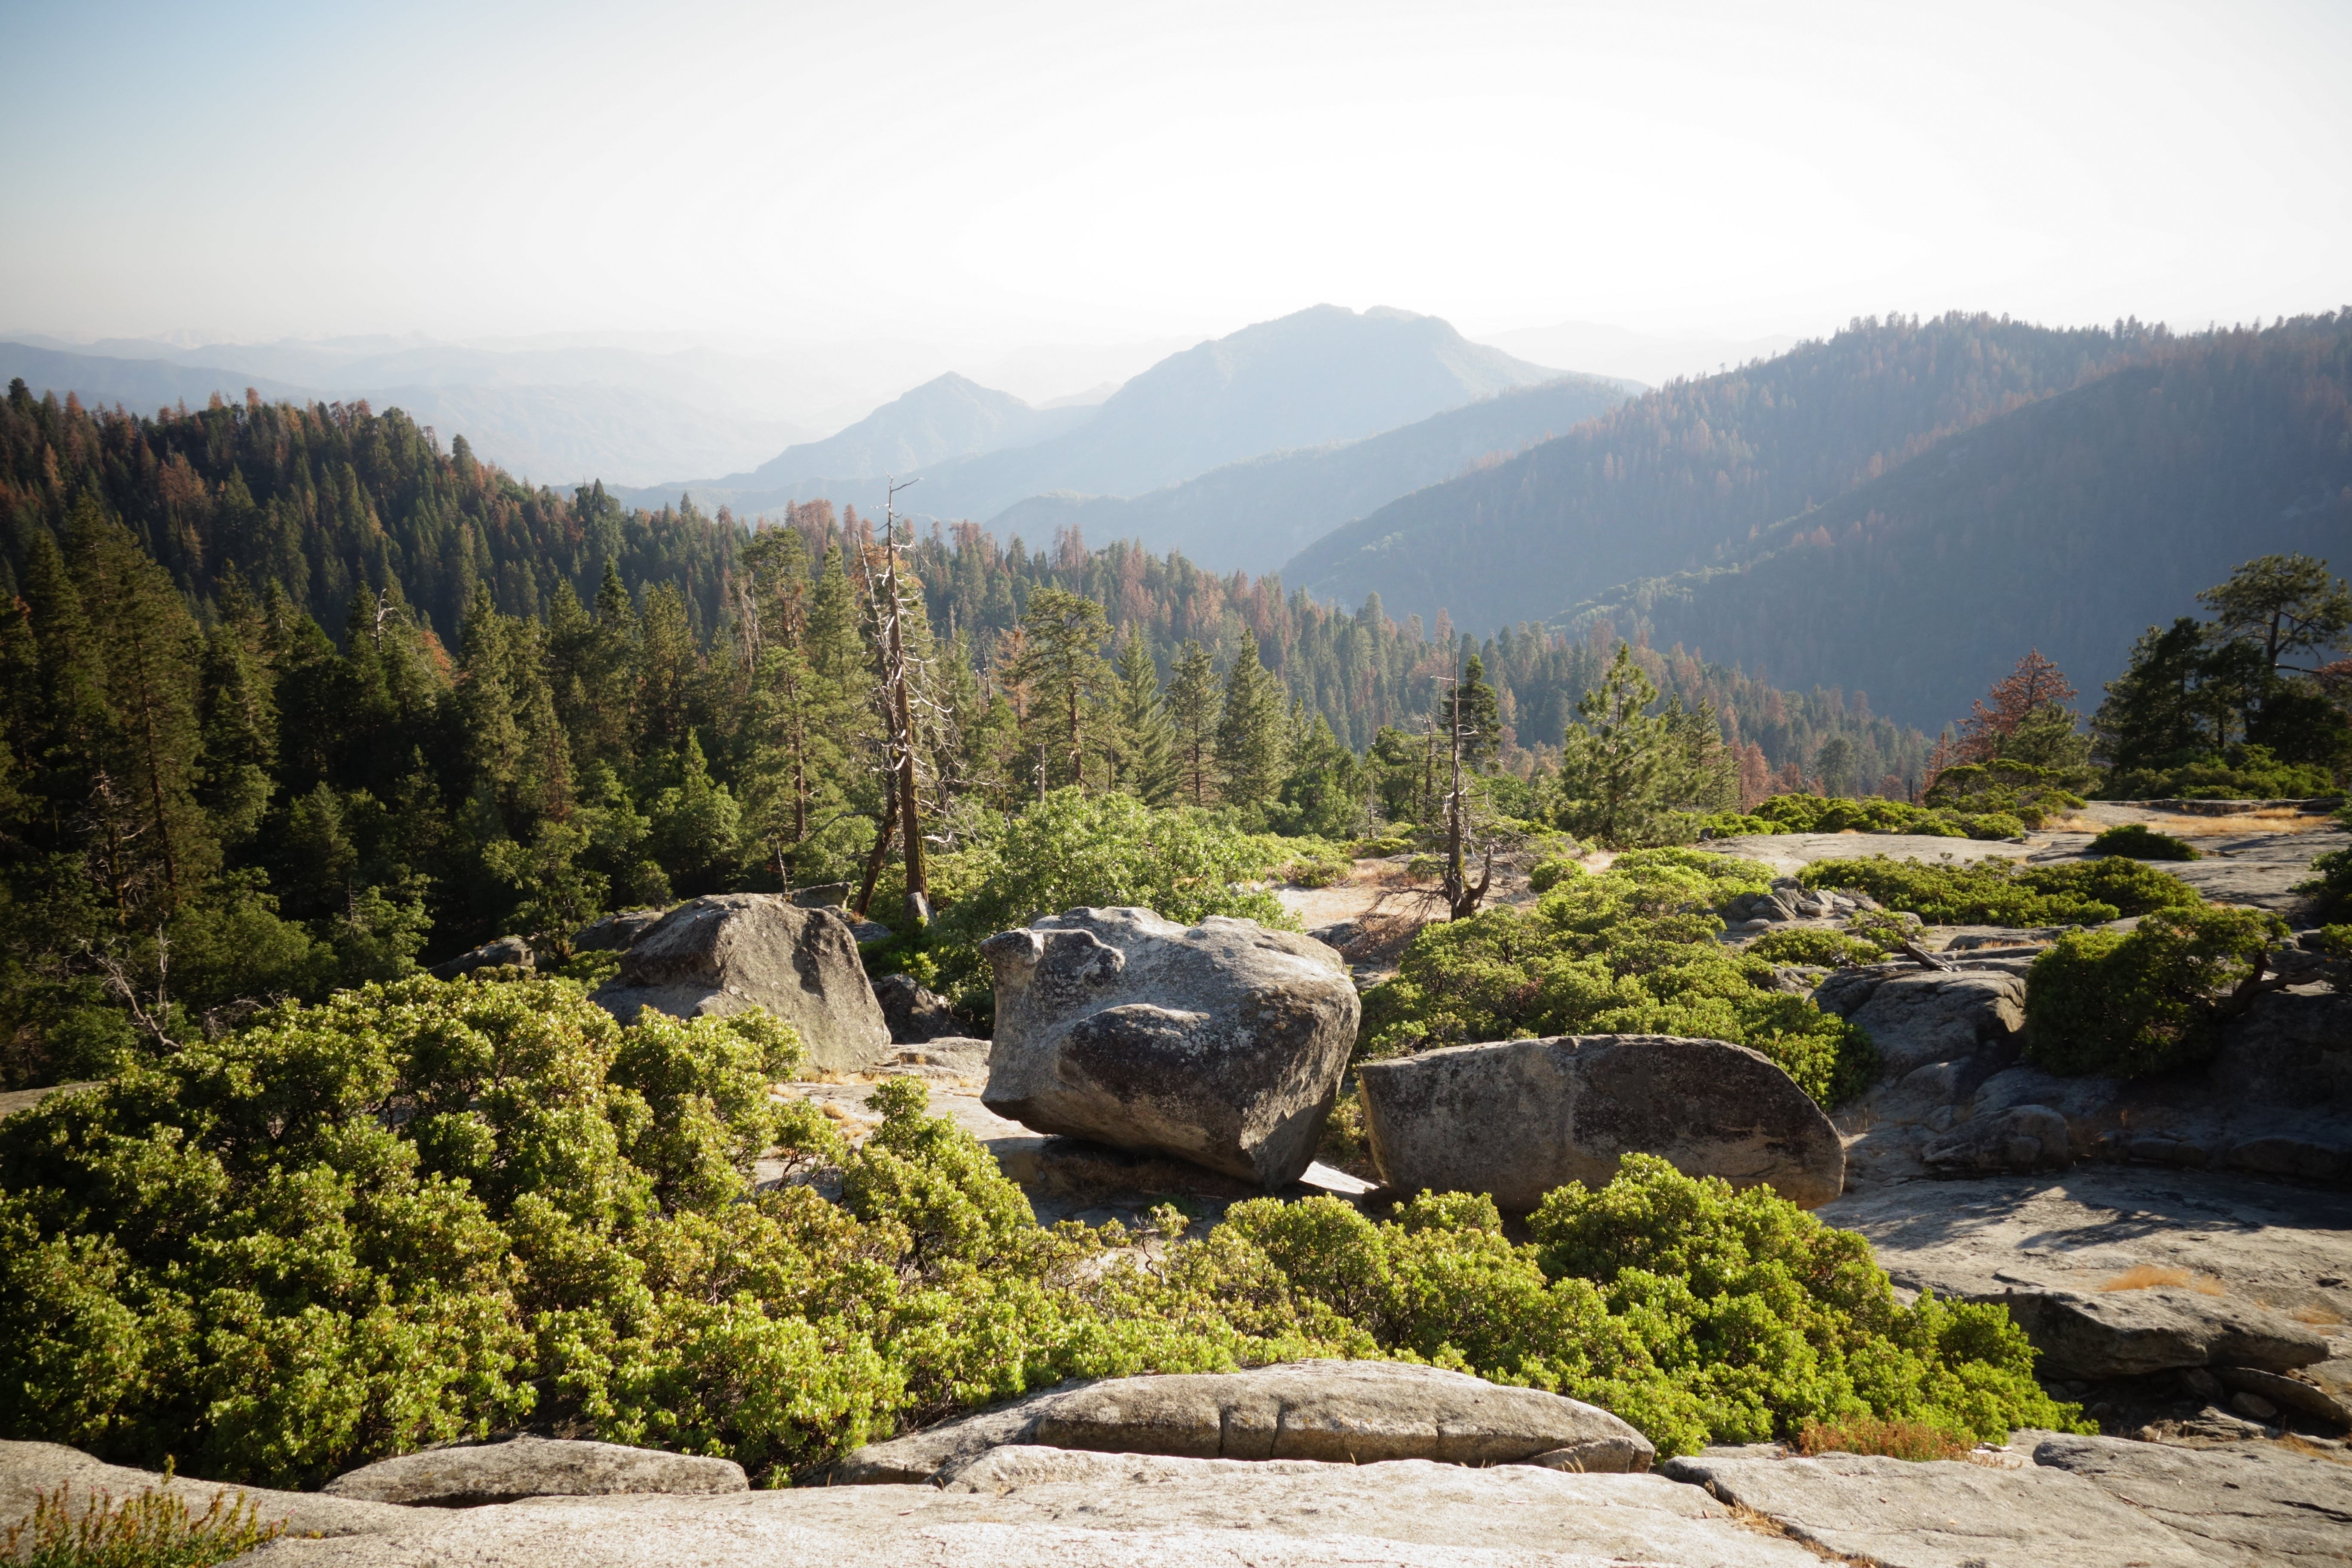 Rock Boulders on Mountain With Trees